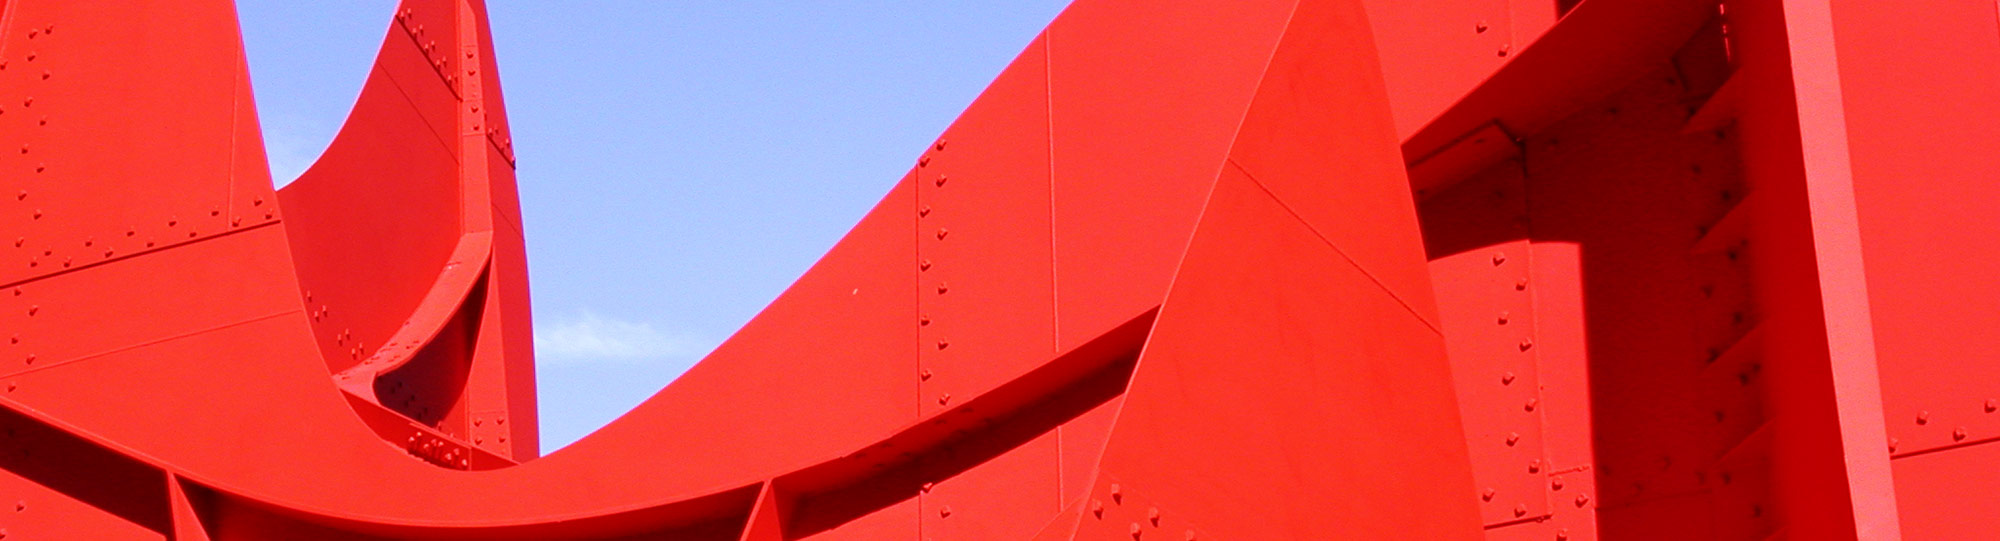 view of part of 'La Grande Vitesse' sculpture by Alexander Calder